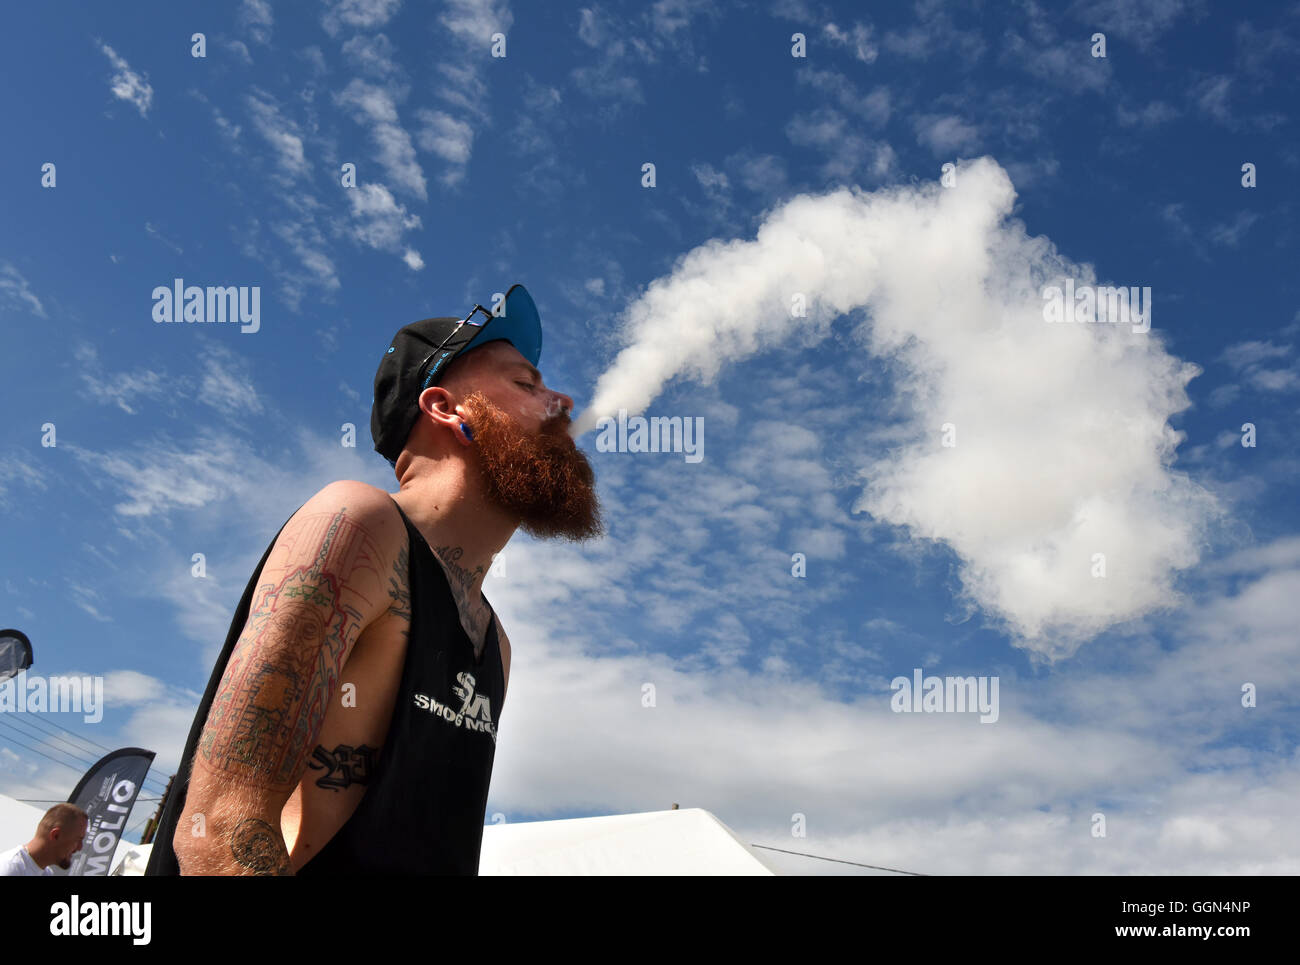 Vapefest the festival for Vaping enthusiasts at Shrewsbury Uk August 6th 2016. The 'Battle of the Clouds' - Stock Image